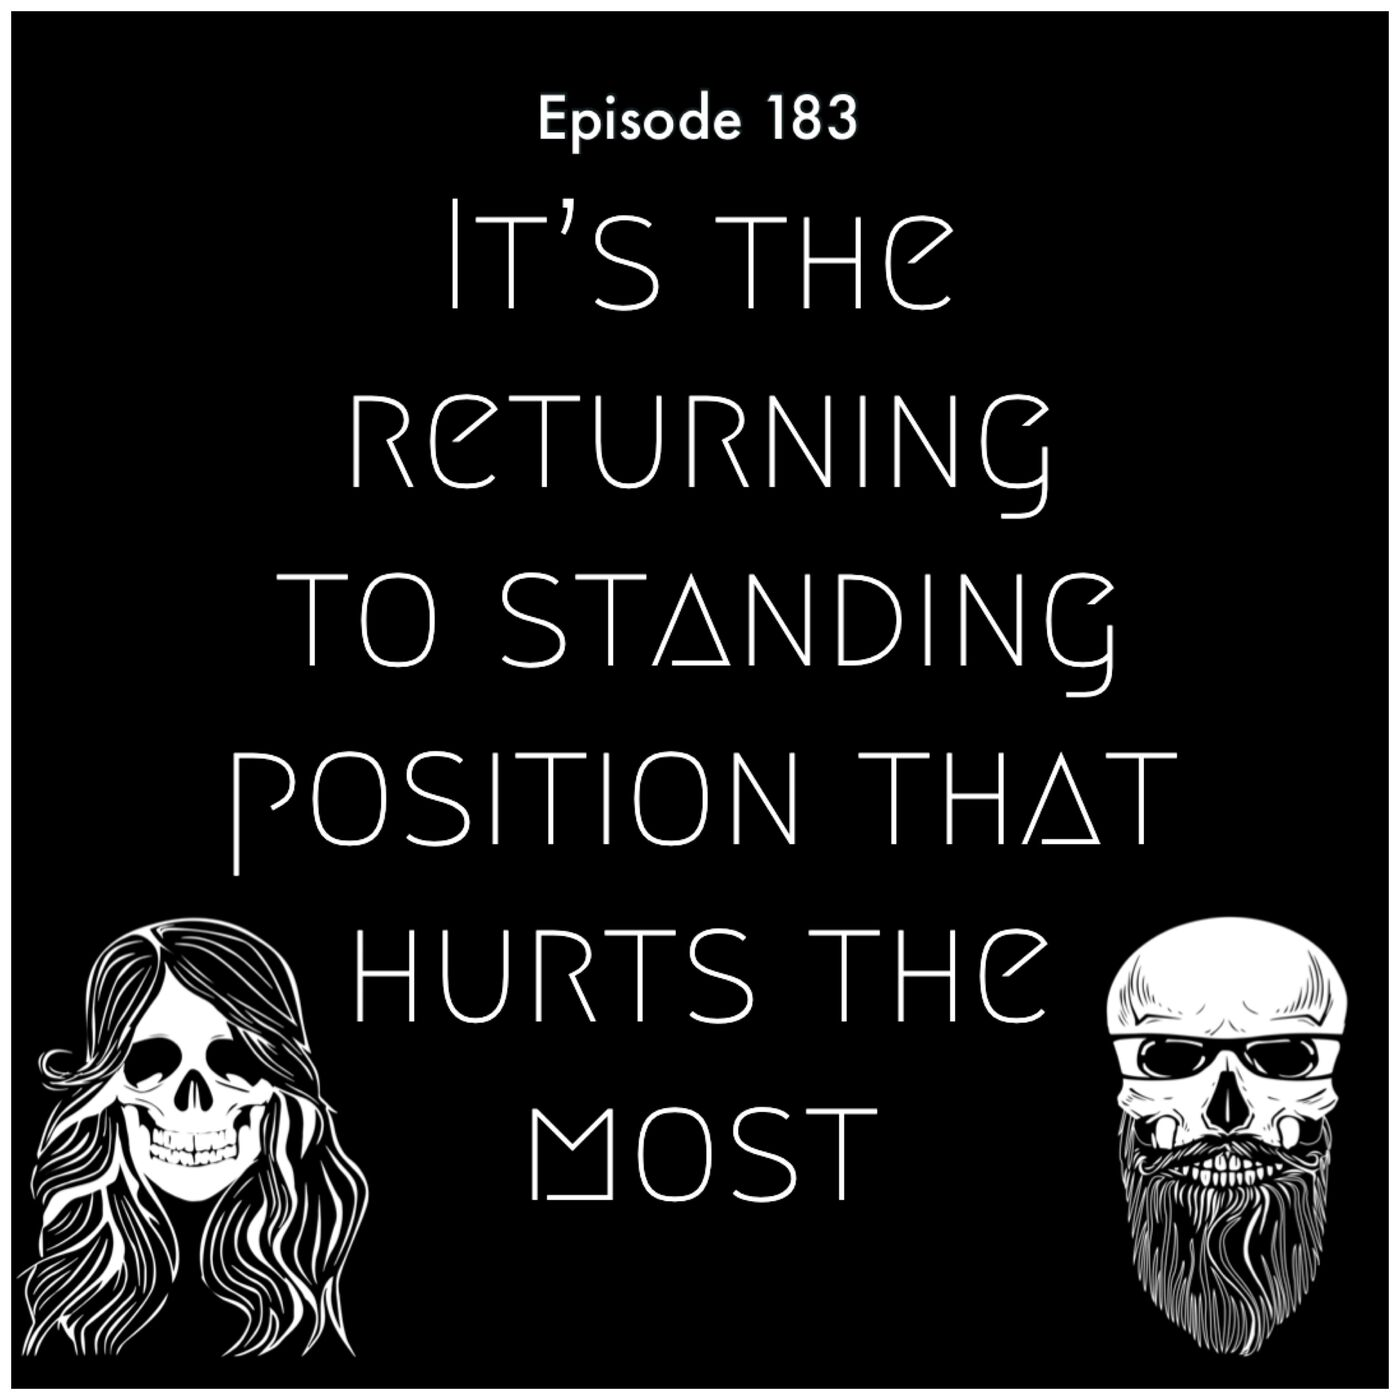 Episode 183: It's The Returning To Standing Position That Hurts The Most